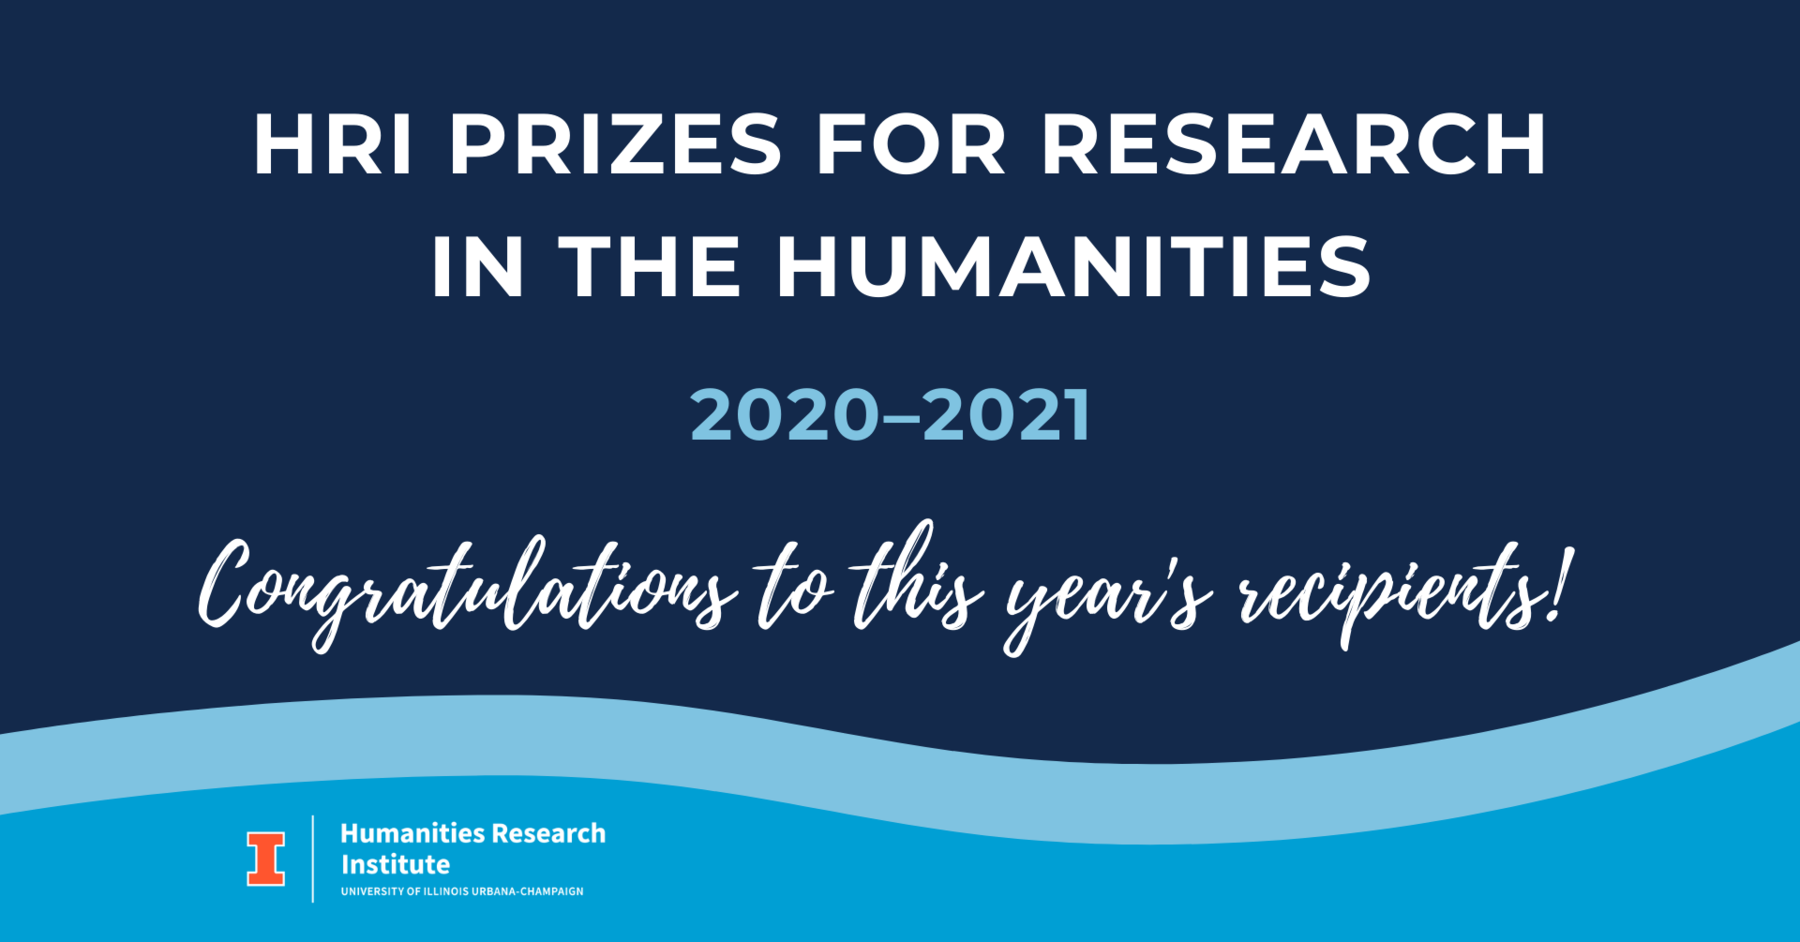 HRI Prizes for Research Winners 2020-2021. Congratulations to this year's recipients!